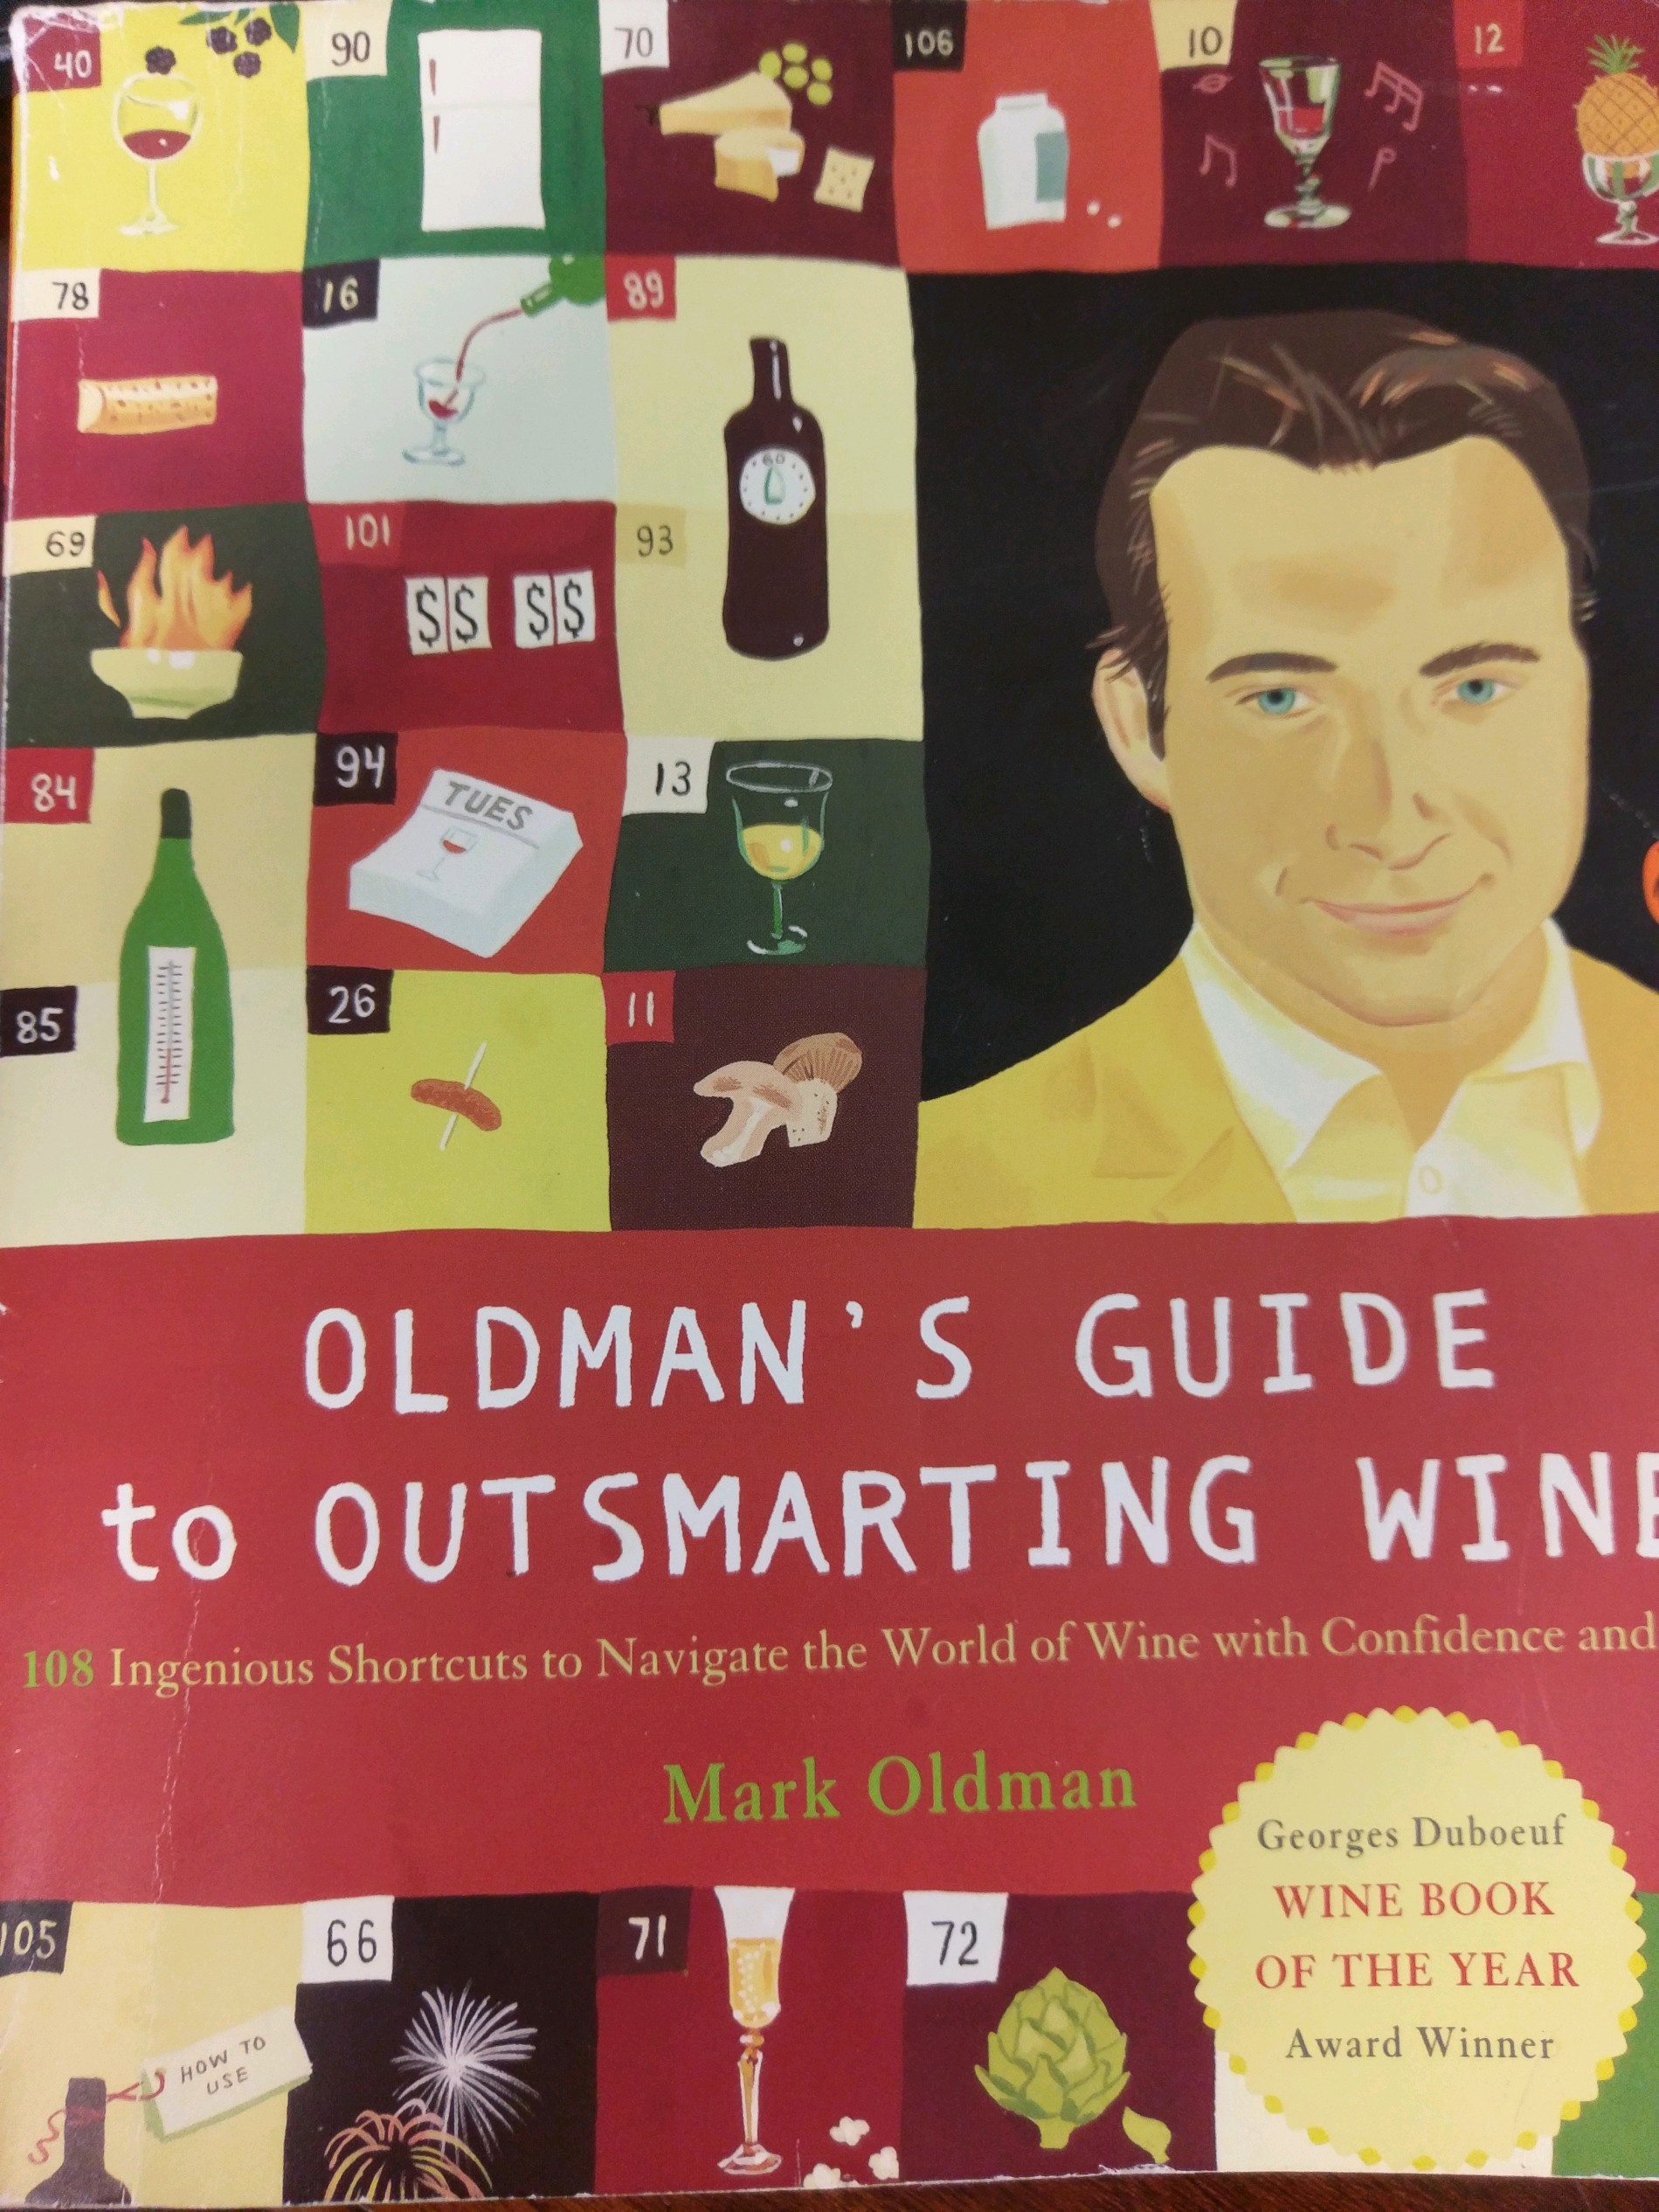 OldmansGuide, wine books